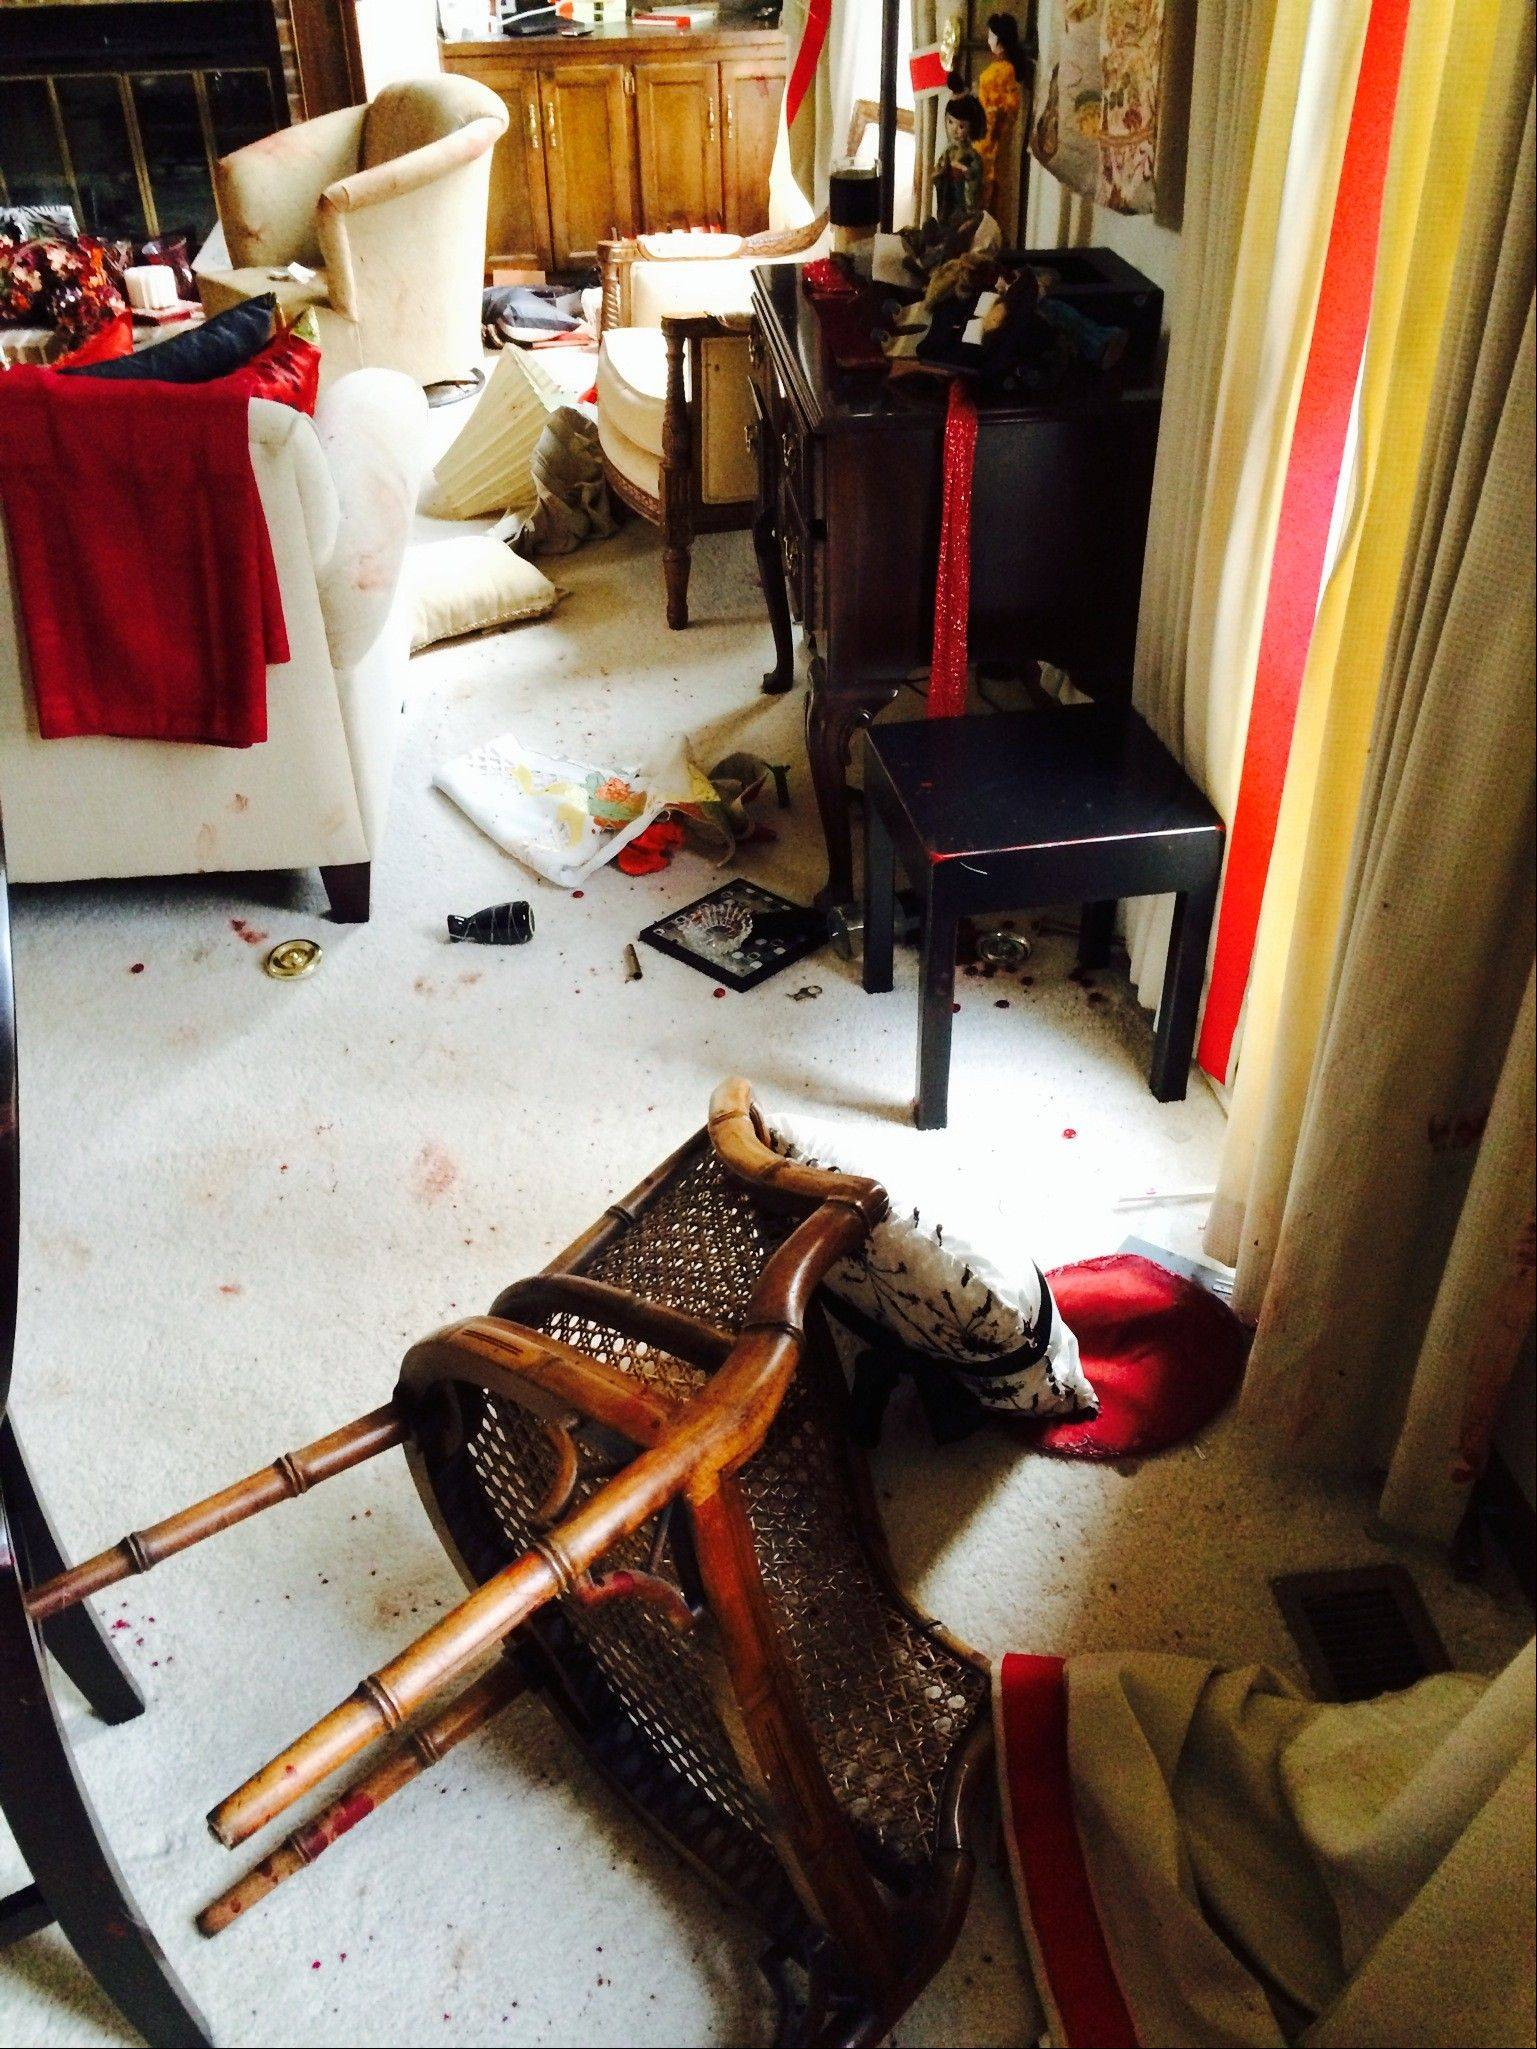 A six-point buck crashed through a window to get into Keith Mohr's townhouse near Sugar Grove last Friday, and caused extensive damage, including to the living room, its eventual escape route.